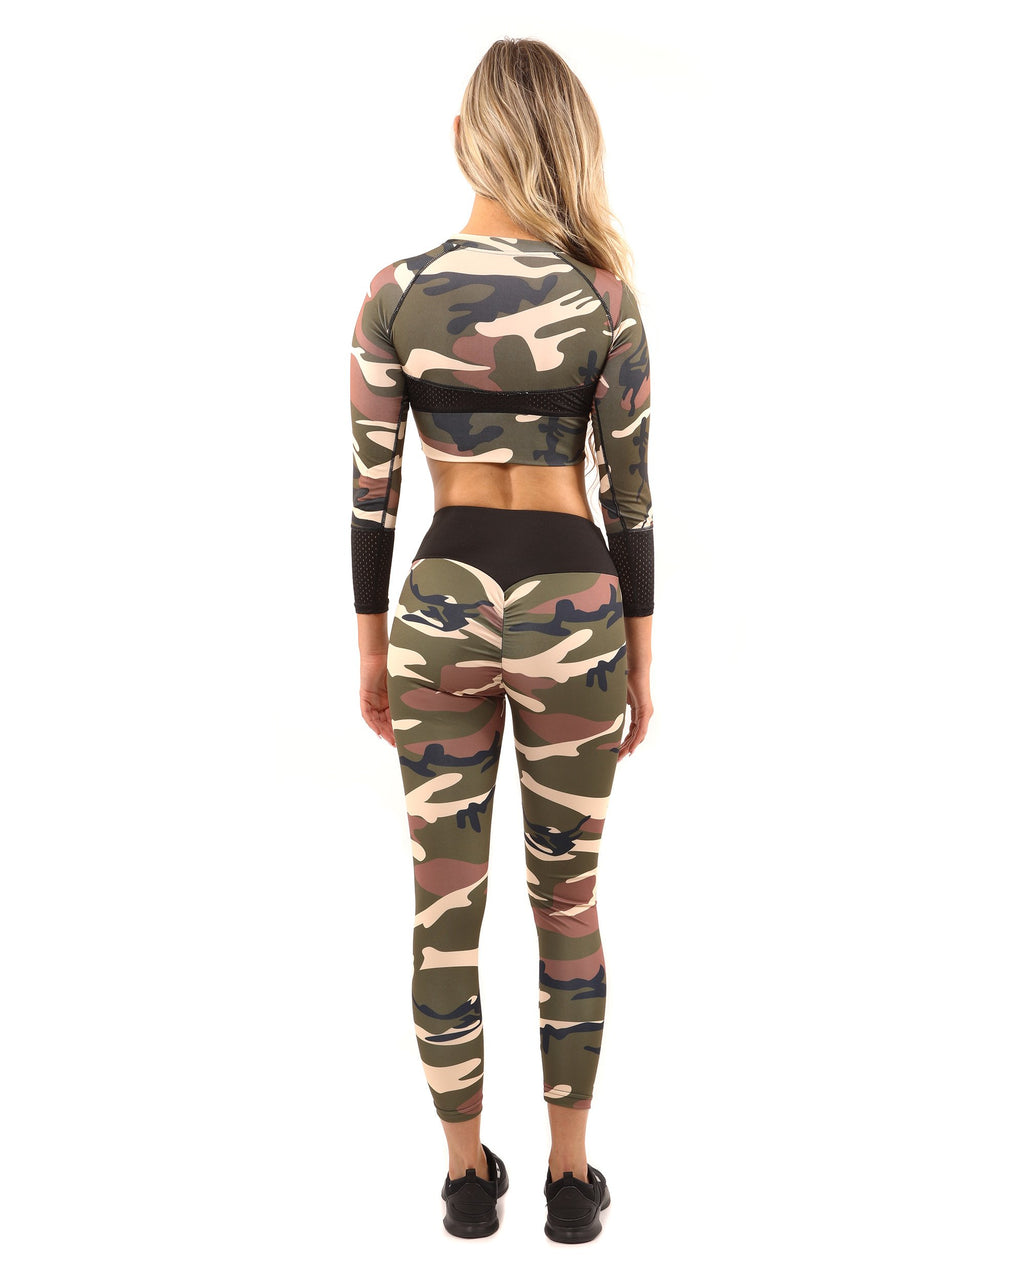 Virginia Camouflage Set - Leggings & Sports Bra - Brown/Green - KATANA FASHION BOUTIQUE